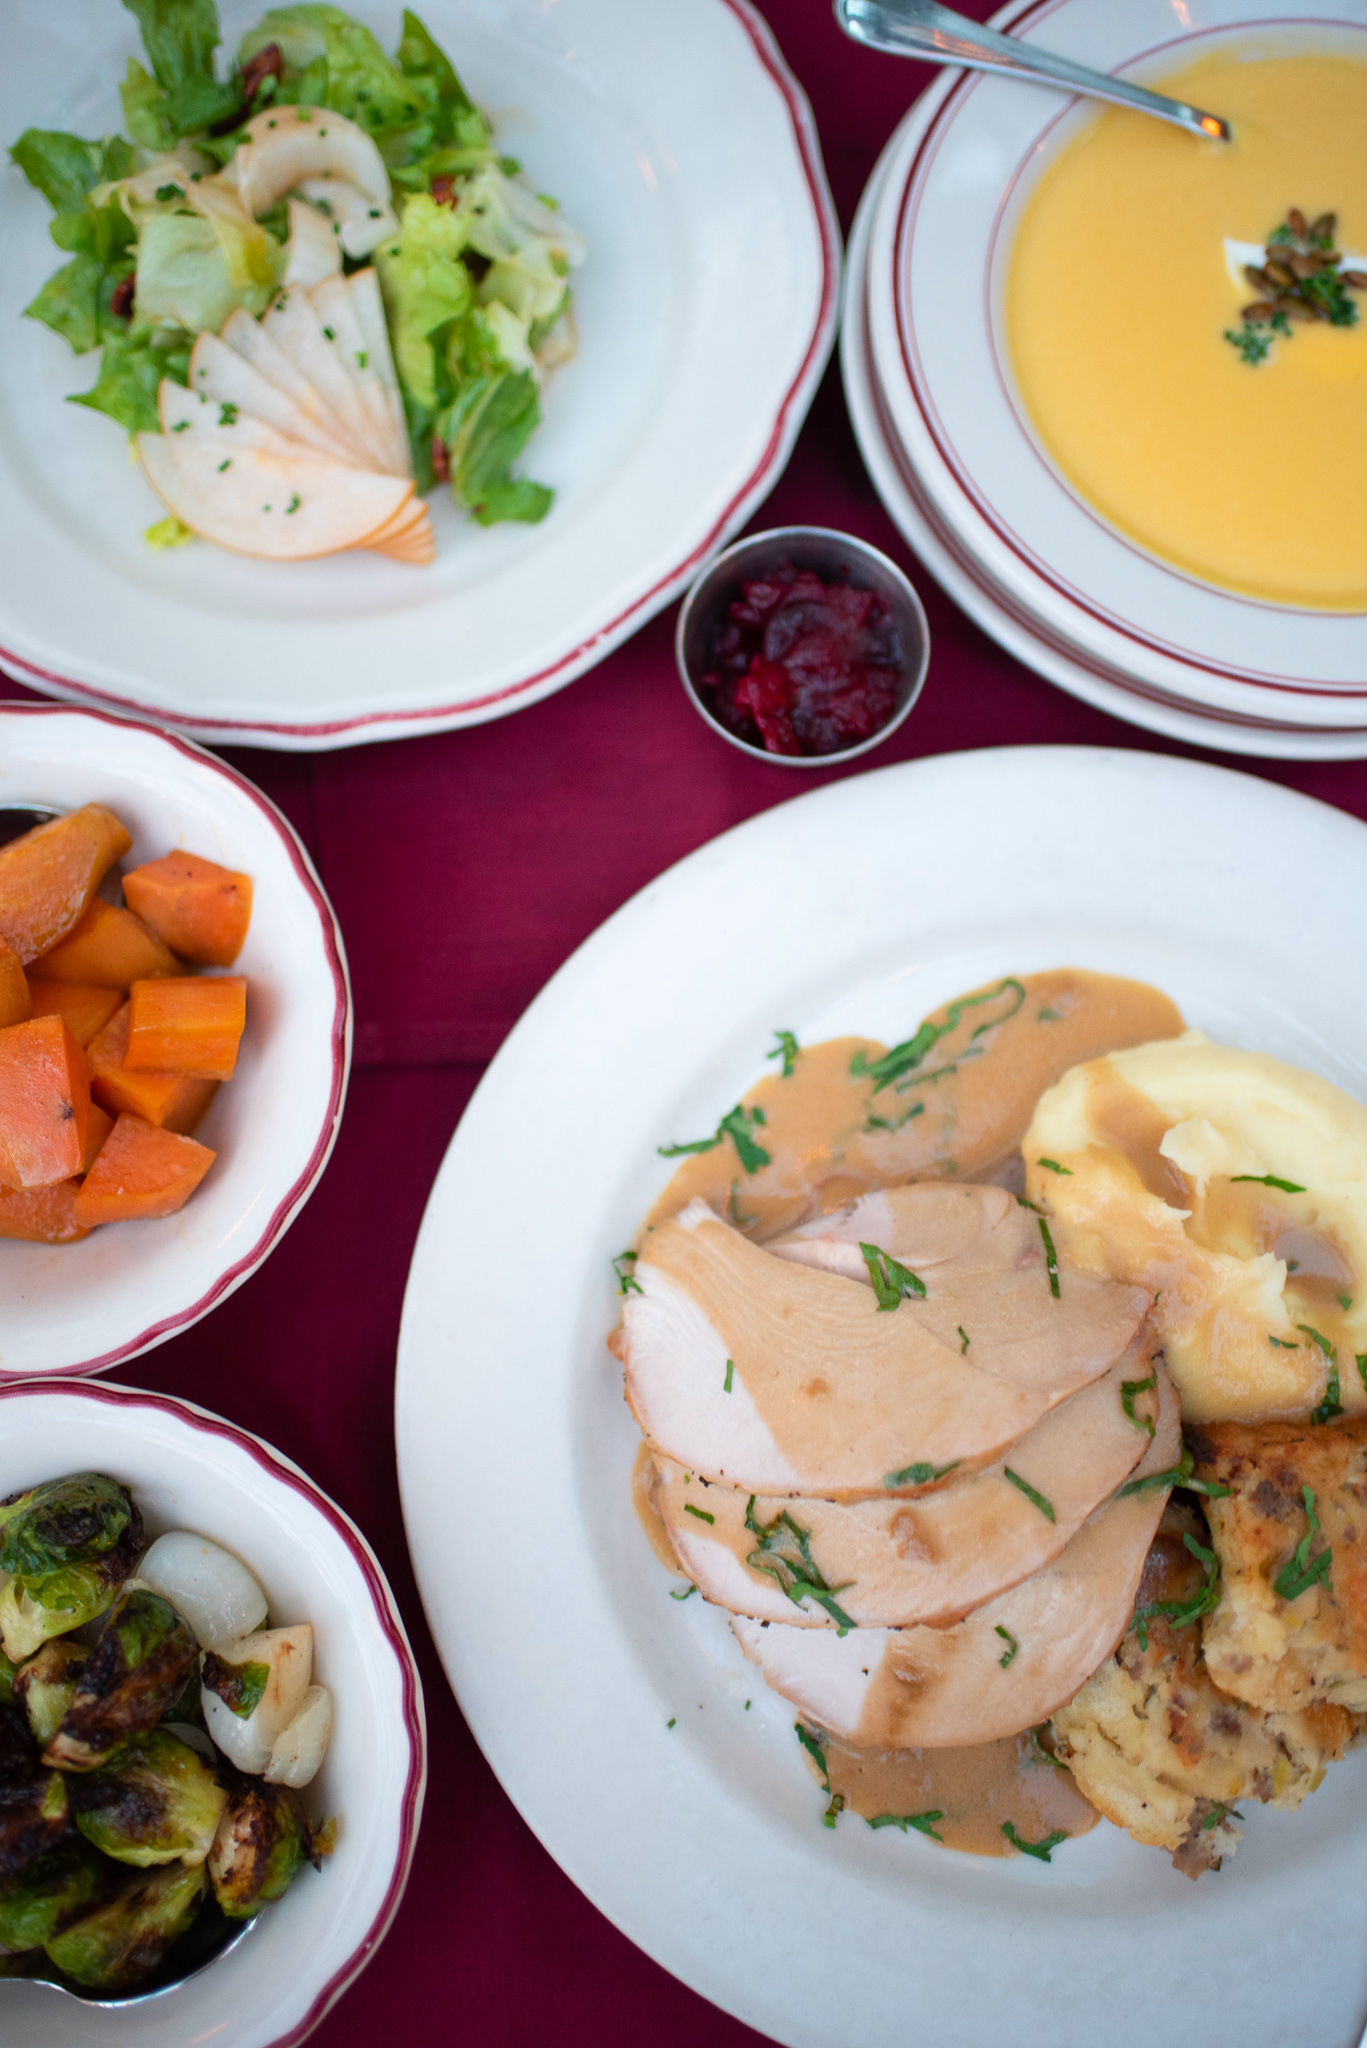 Thanksgiving dinner at Le Diplomate. Photo by Rachel Pruett.